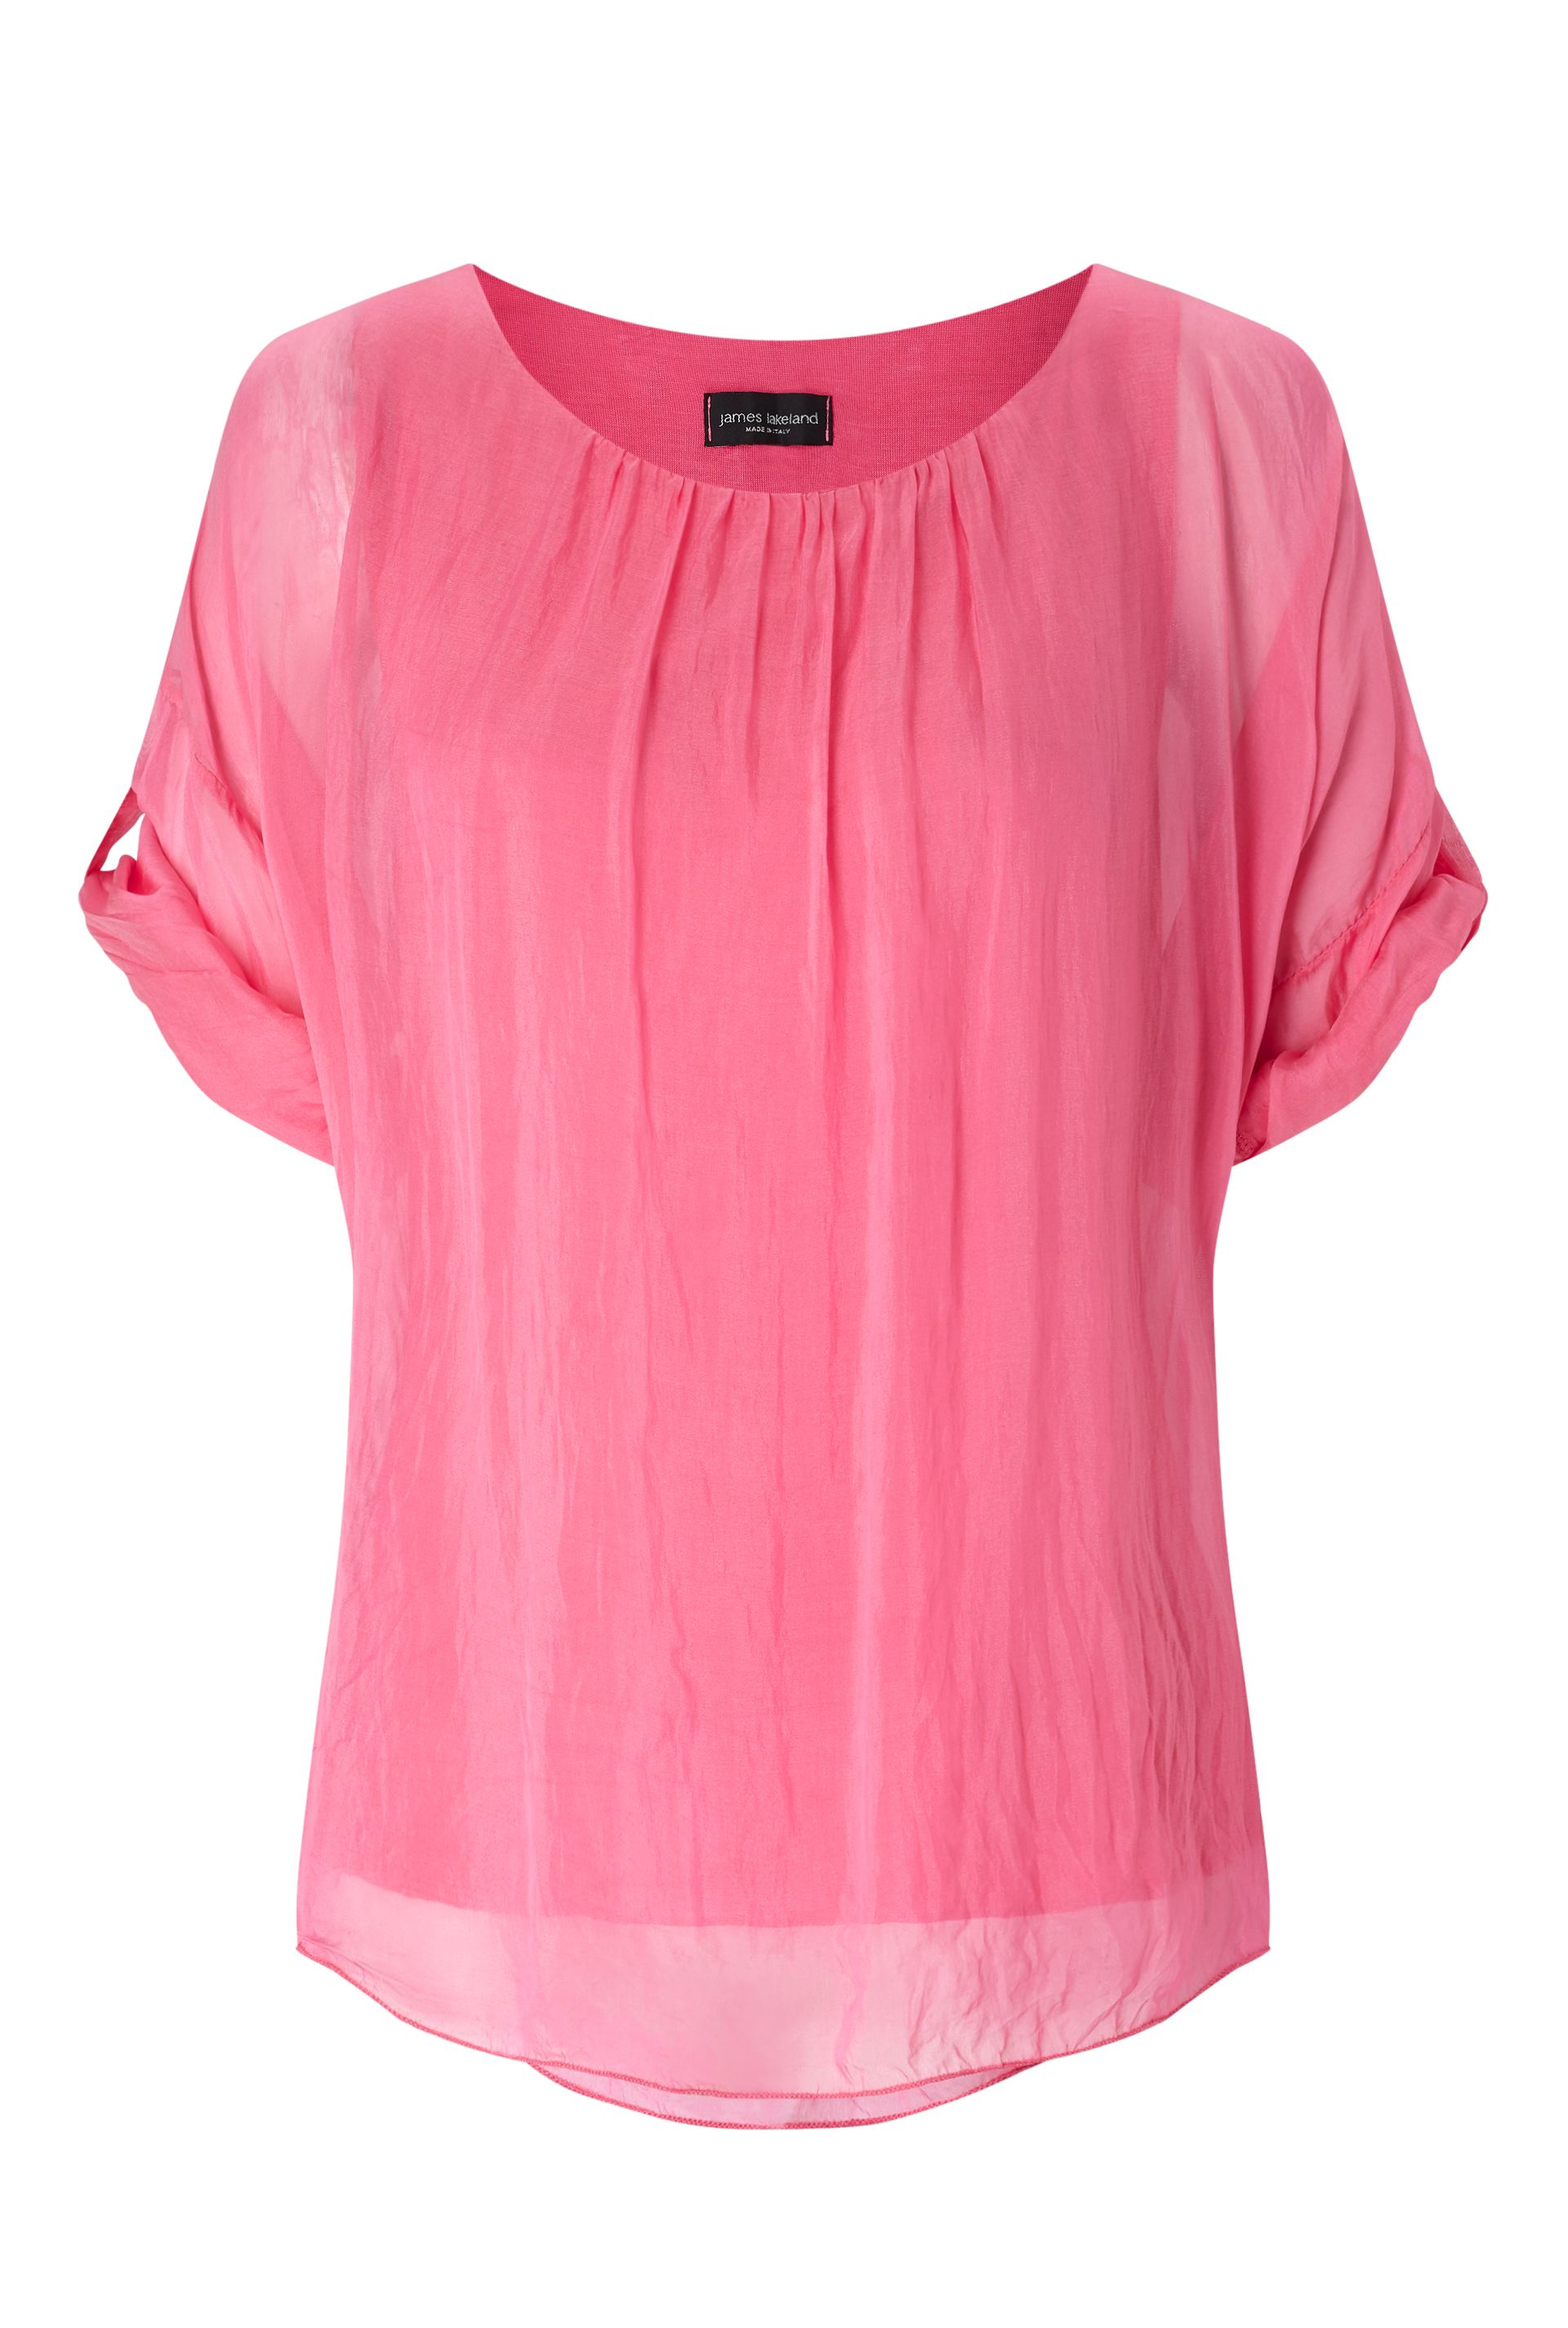 James Lakeland Silk 3/4 Sleeve Top, Pink